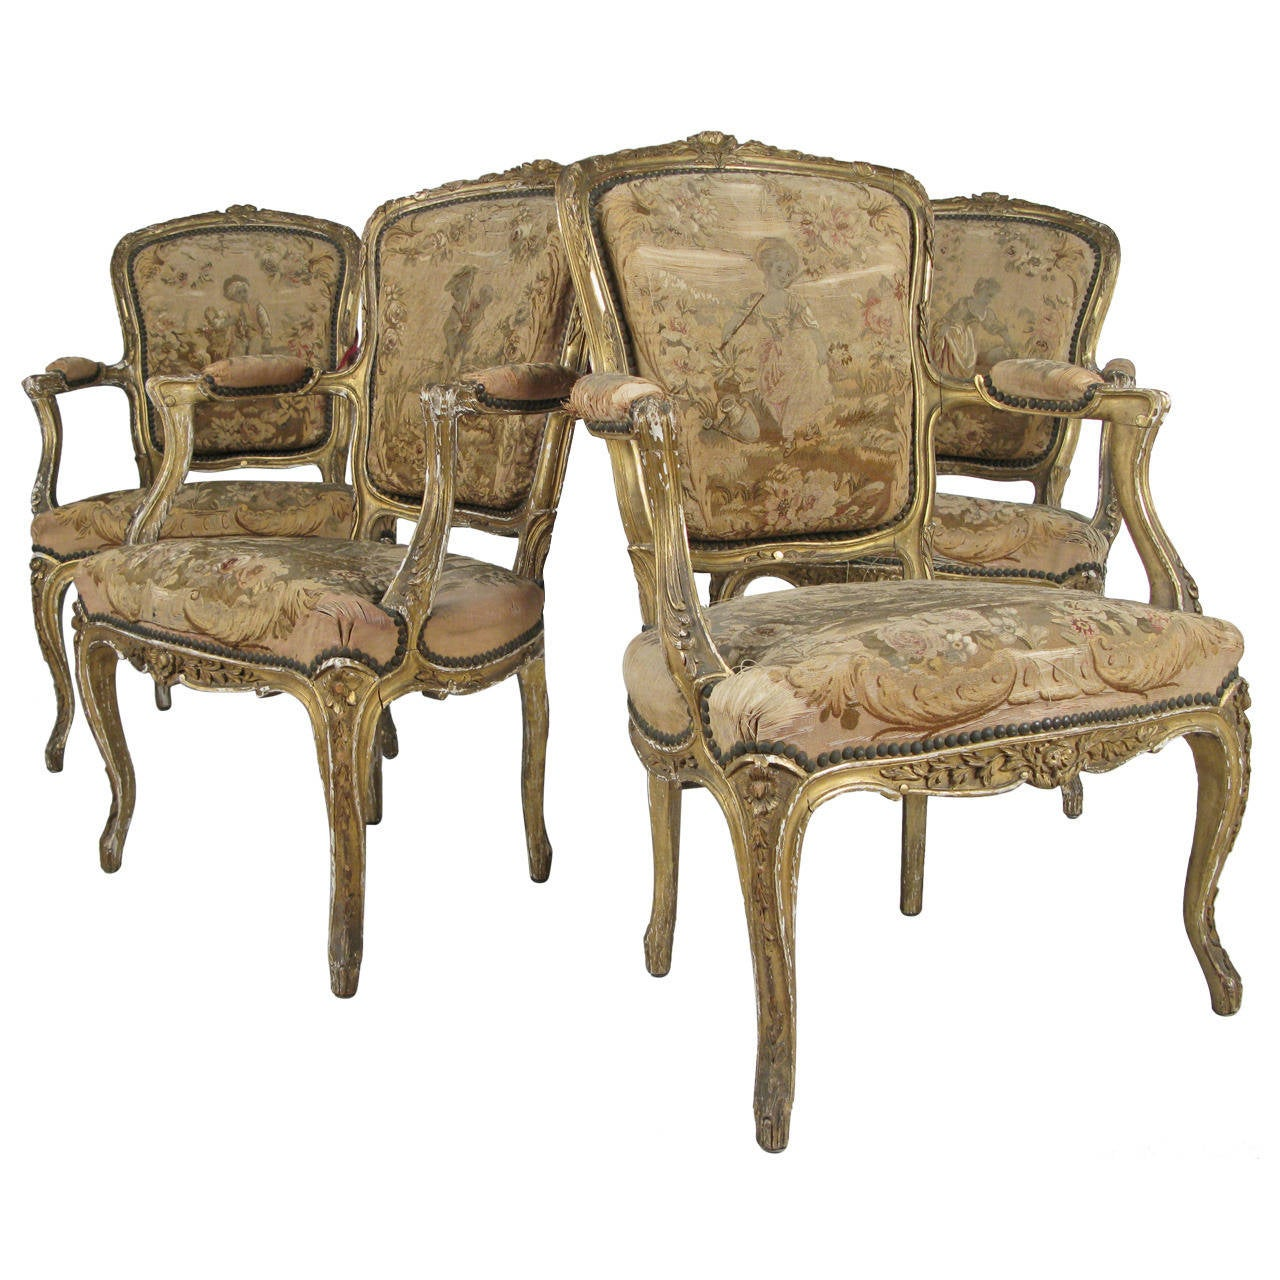 set of four antique louis xv style giltwood fauteuils at 1stdibs. Black Bedroom Furniture Sets. Home Design Ideas